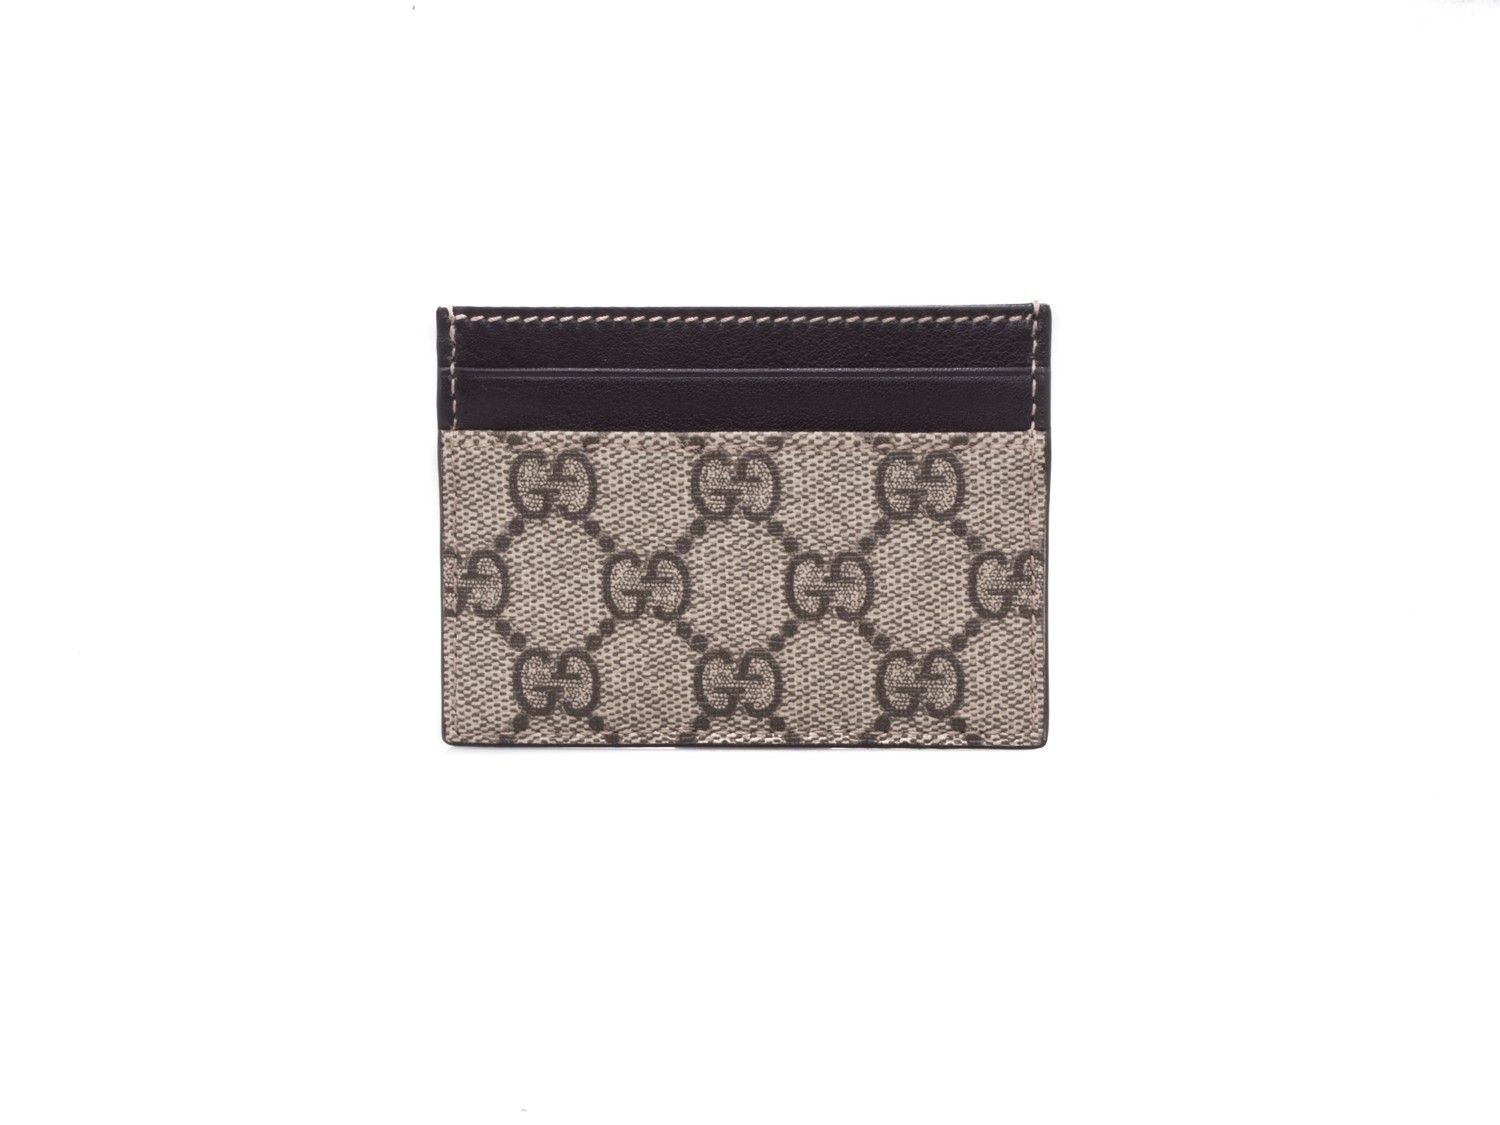 Gucci credit card holder in gg supreme beige elsa boutique gucci credit card holder in gg supreme beige elsa boutique magicingreecefo Images